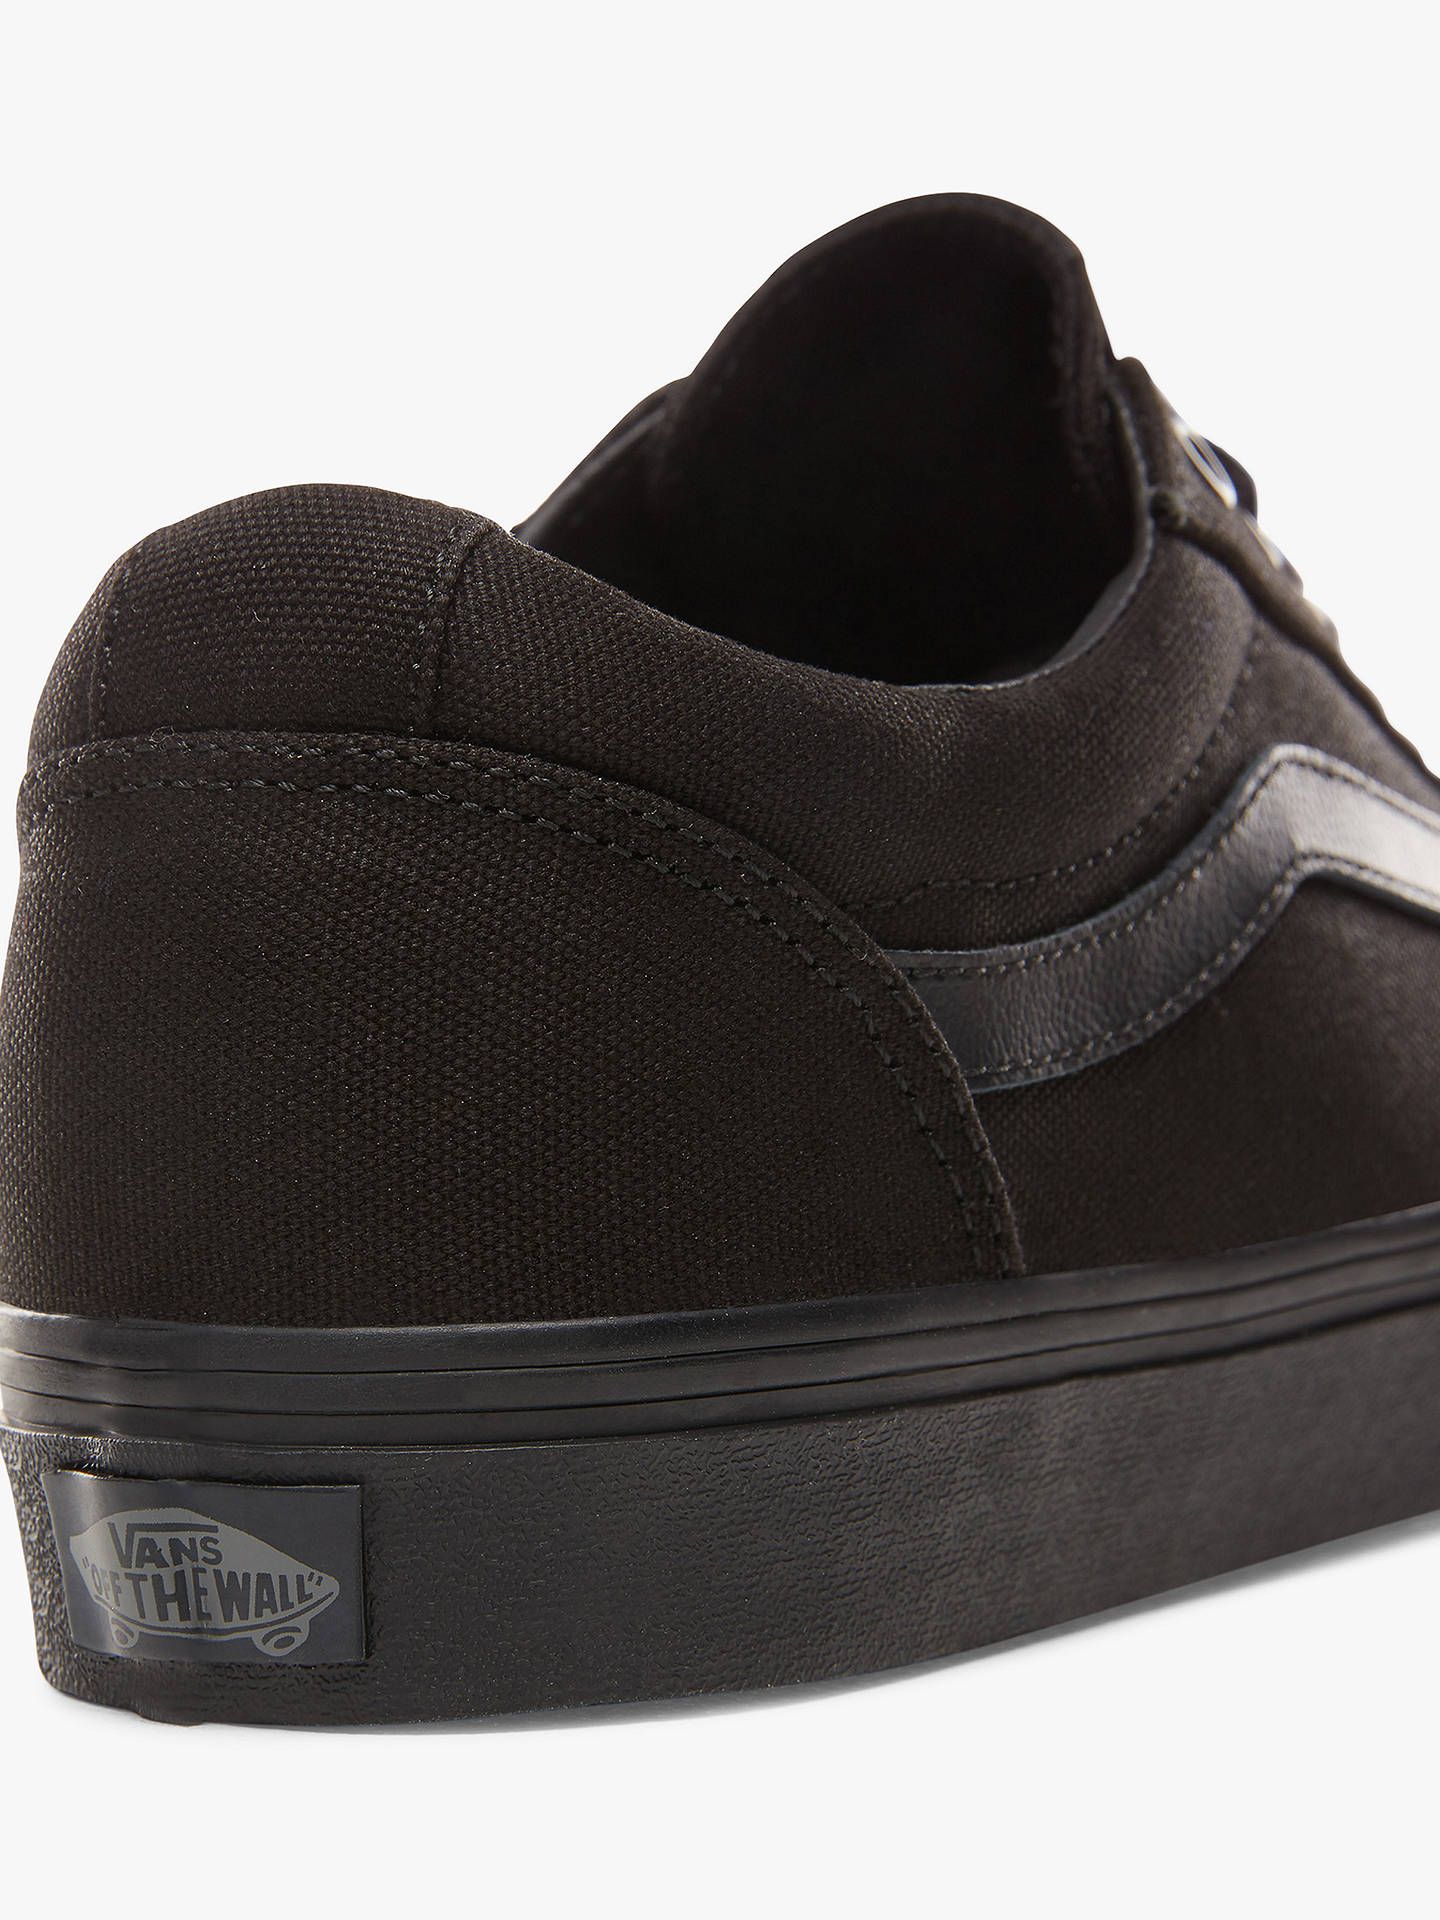 21d0f8c31 ... Buy Vans Ward Trainers, Black, 11 Online at johnlewis.com ...